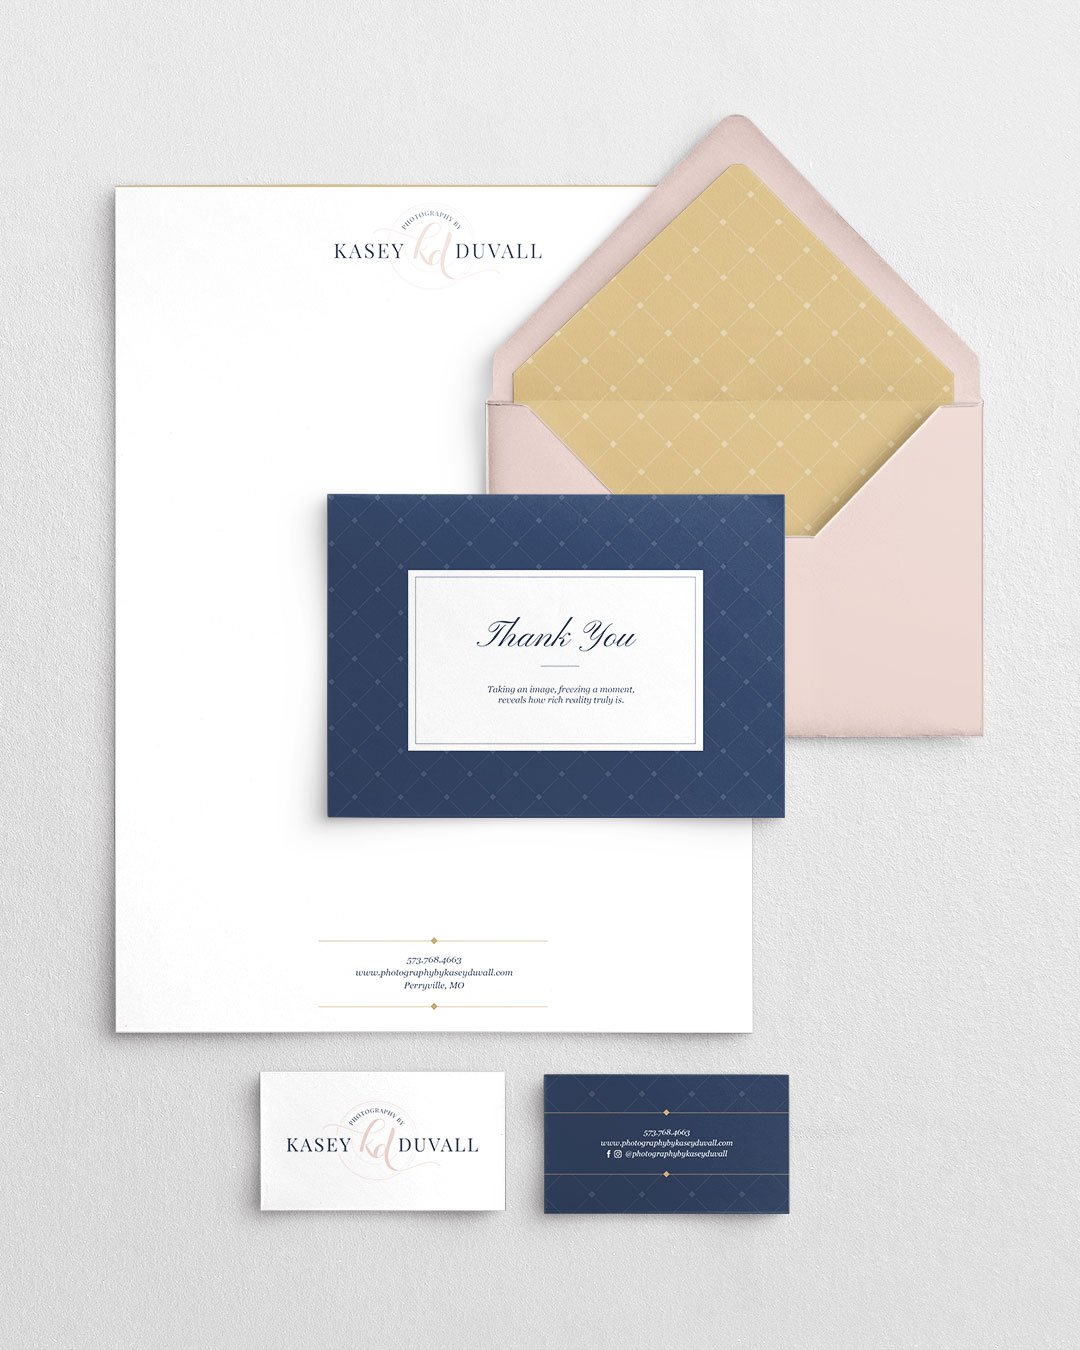 collateral and custom branding for photographer kasey duvall design by taney creative